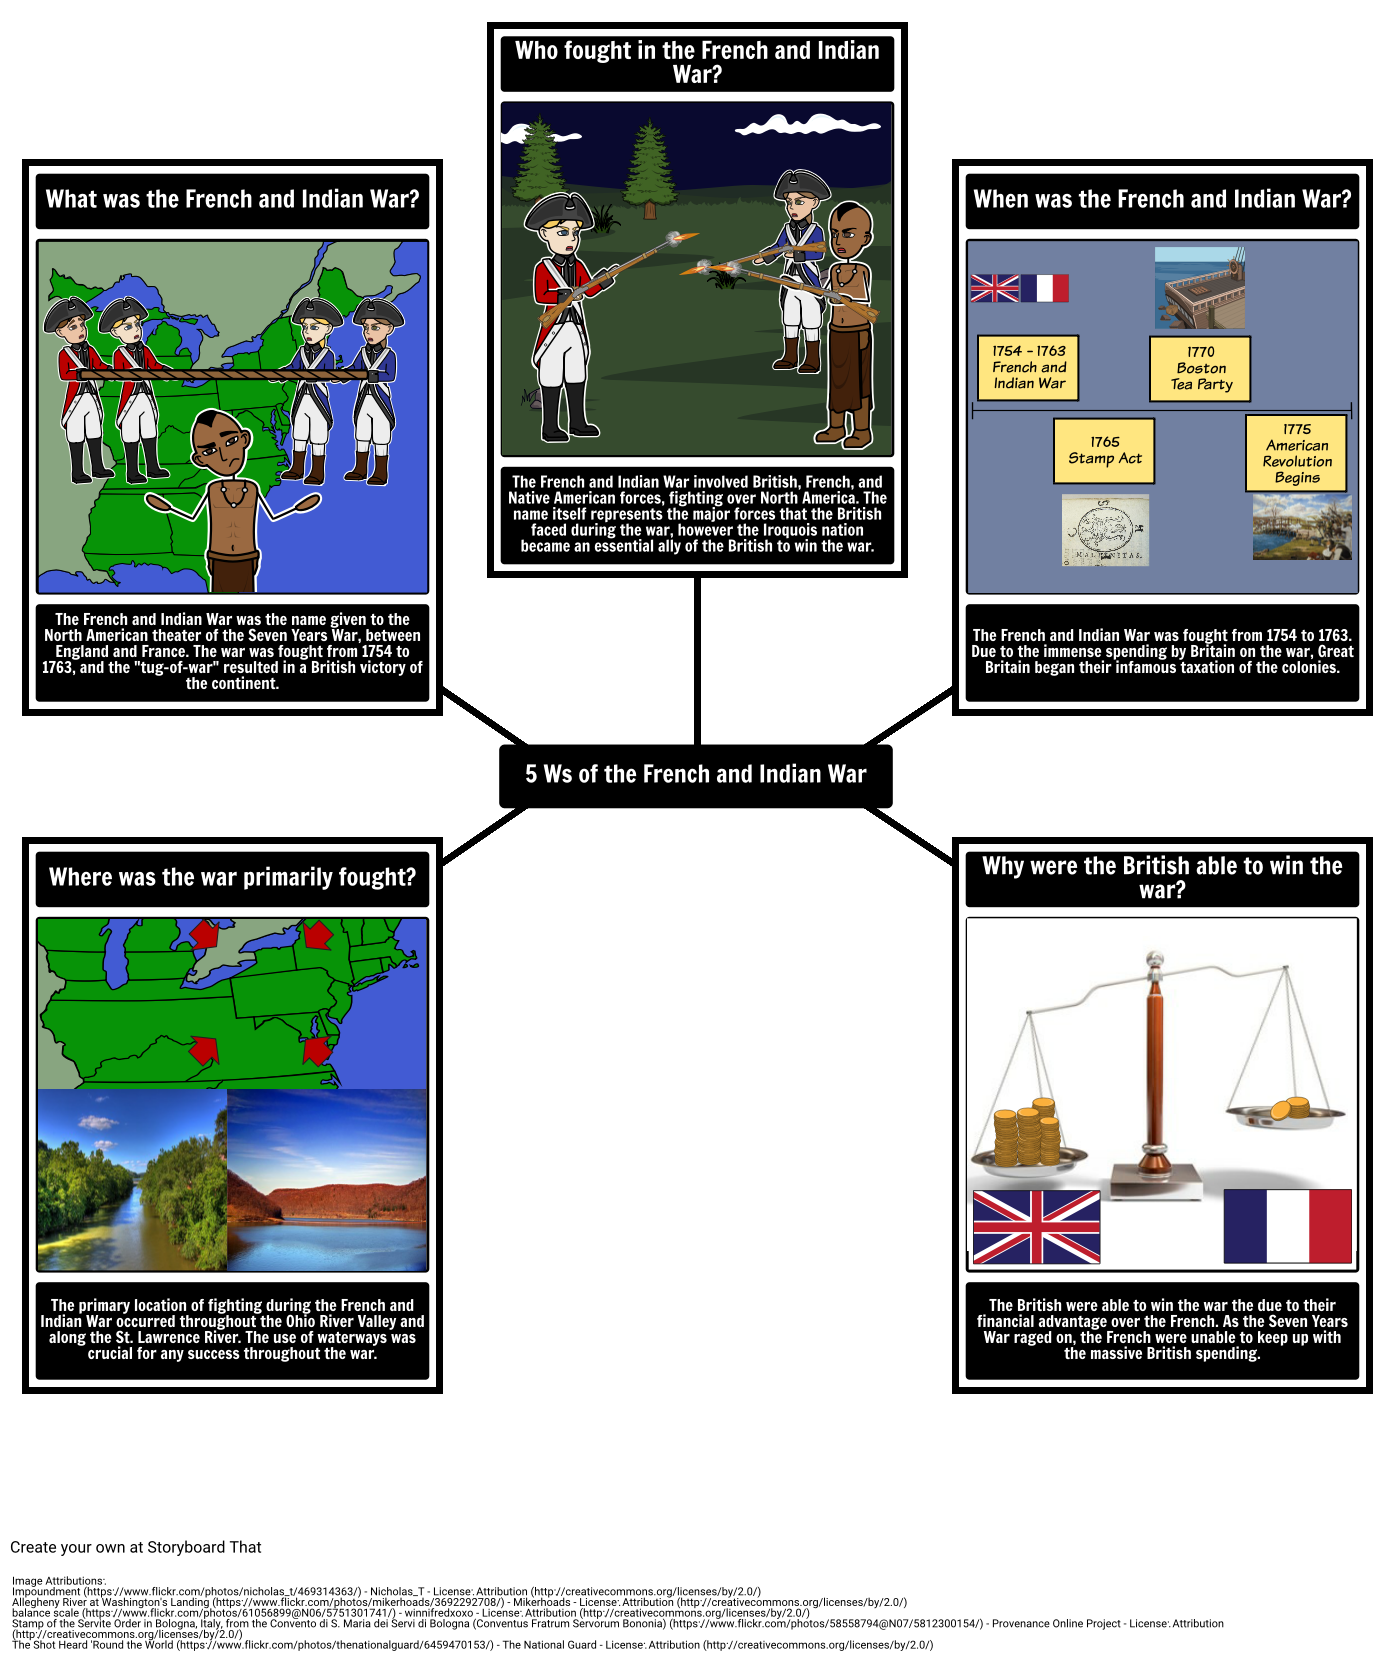 French and Indian War 5 Ws